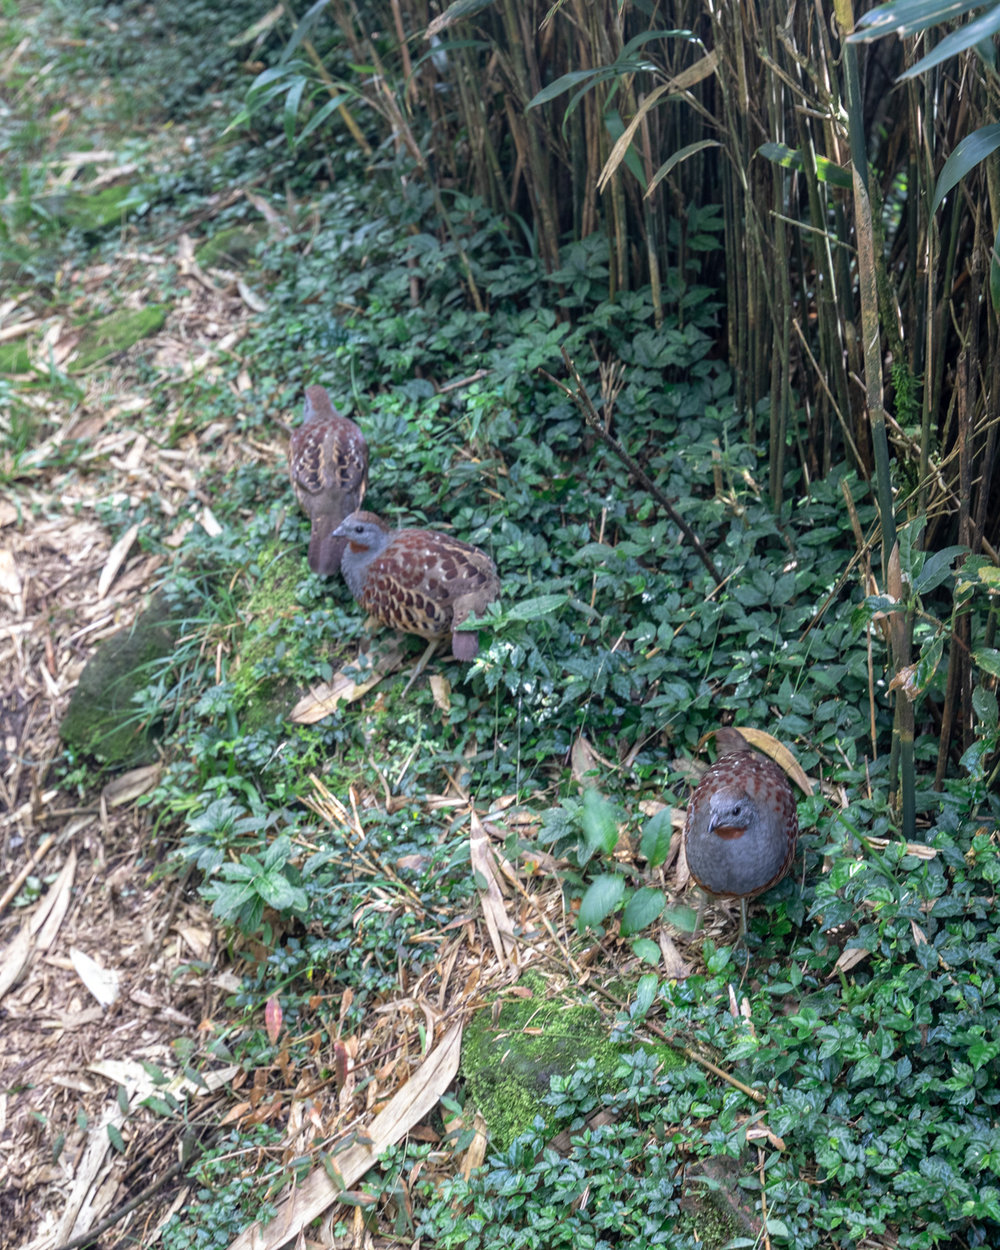 Chinese Bamboo Partridge at Yangmingshan